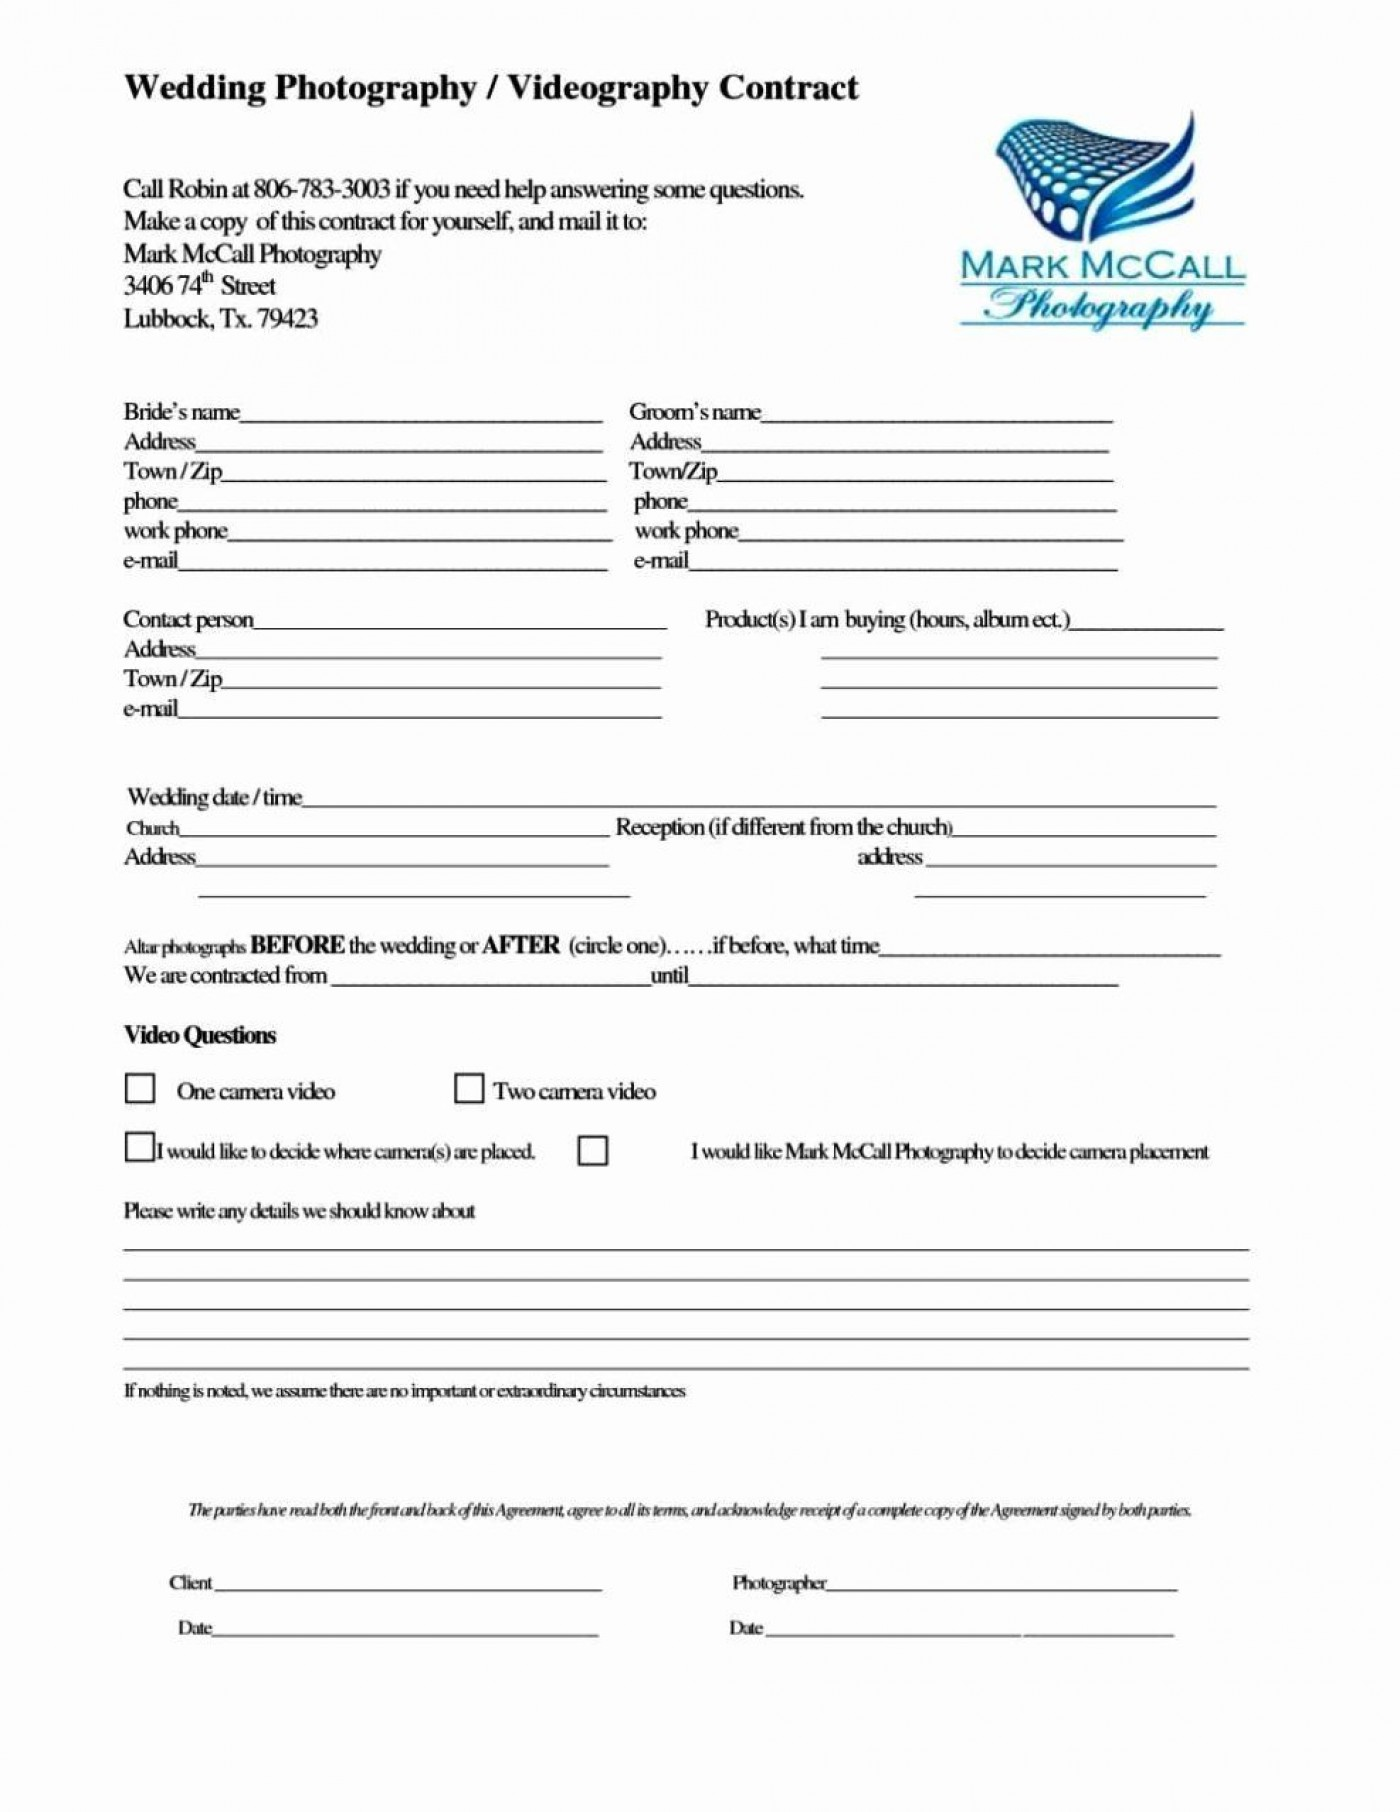 000 Unusual Wedding Videography Contract Template High Resolution  Pdf Example Word1400